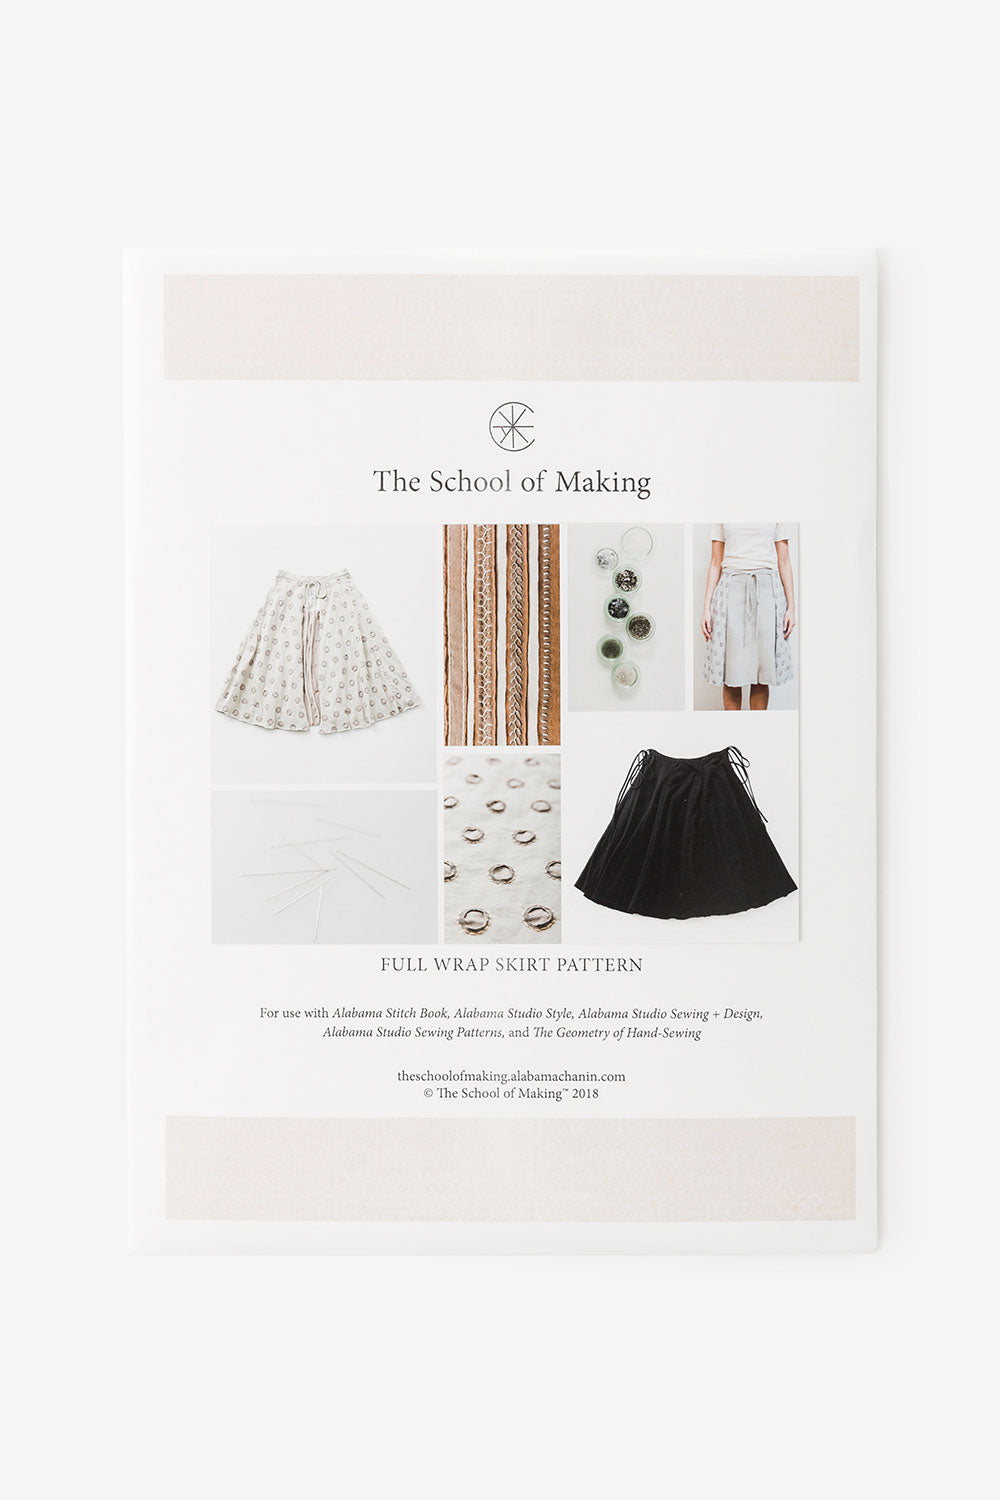 The School of Making Full Wrap Skirt Pattern Maker Supplies for Hand-Sewing